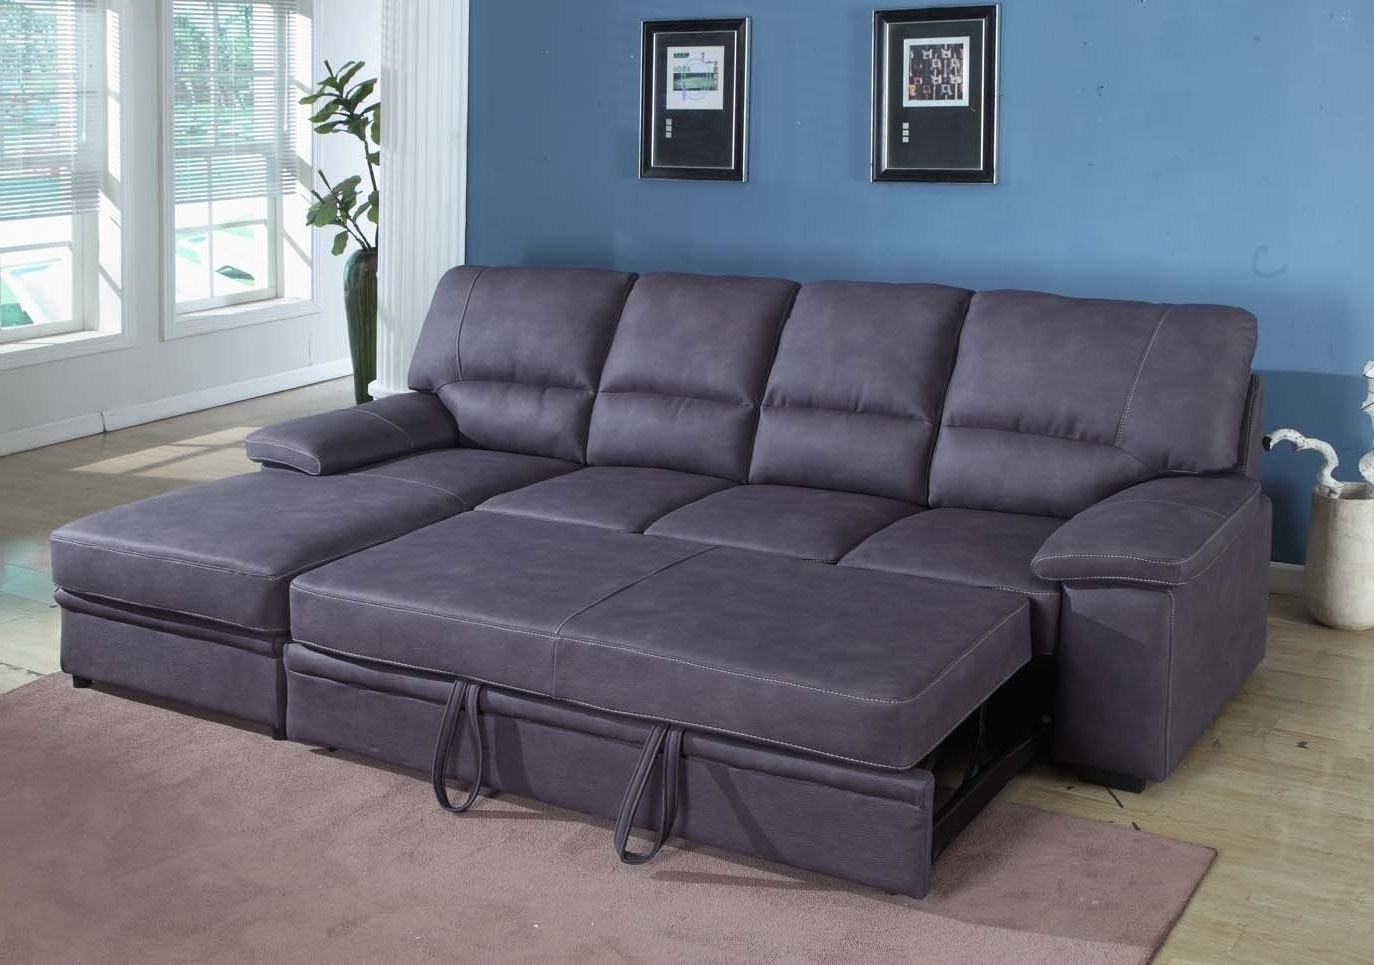 Most Recently Released Sleeper Sectional Sofas With Chaise Within Awesome Comfy Sectionals , Fresh Comfy Sectionals 97 About Remodel (View 11 of 15)